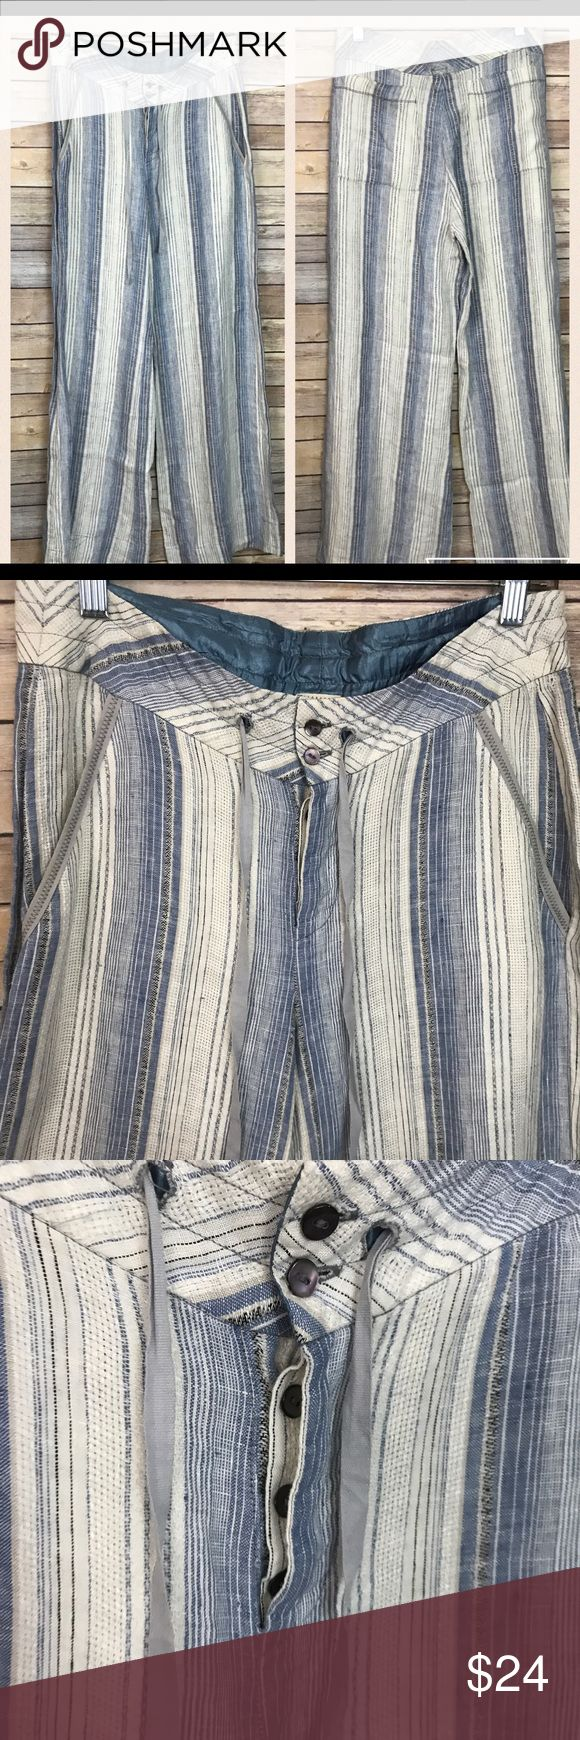 """Anthropologists Tiny Wide leg Linen Pants Anthropologie Tiny blue/white striped Linen pants. Some loose threads on back but not very noticeable. No stains or Holes. Waist: 30"""" Hips: 34"""" Inseam: 32"""".                Stock #1953 Anthropologie Pants Trousers"""